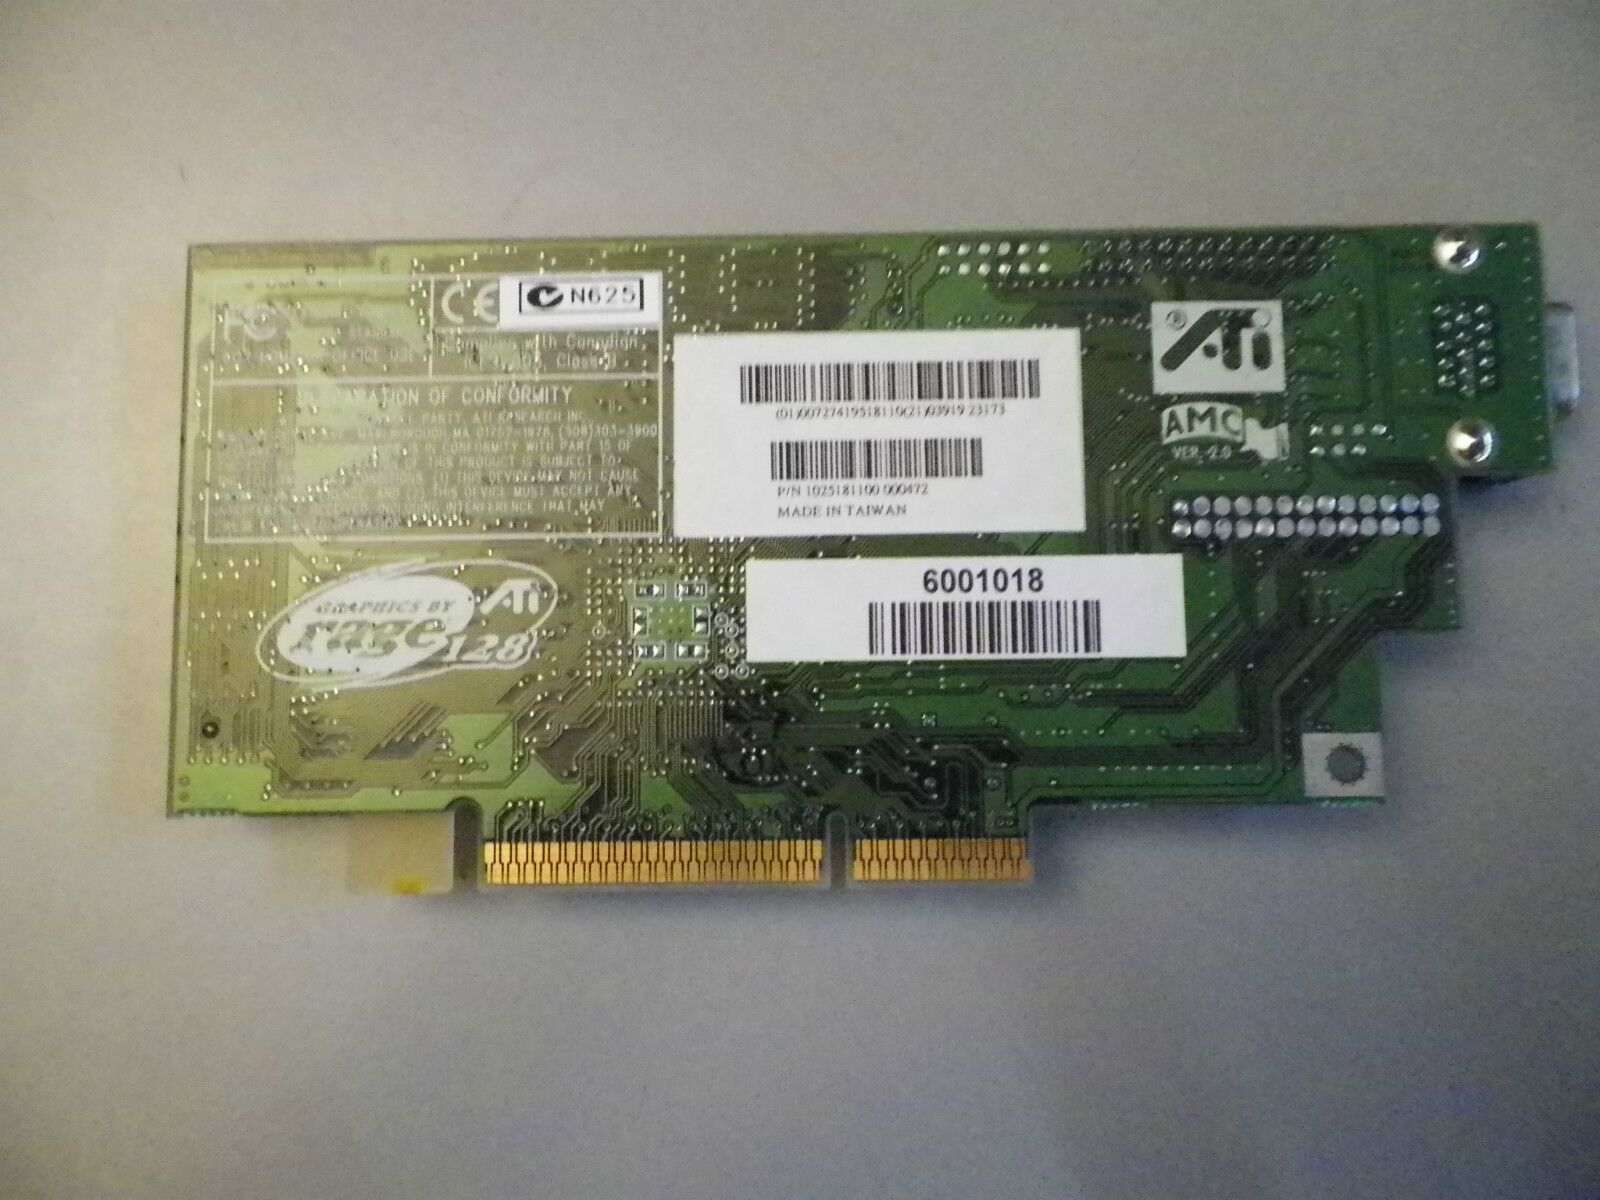 *NEW* ATI GRAPHICS CARD BY RAGE 128 6001018